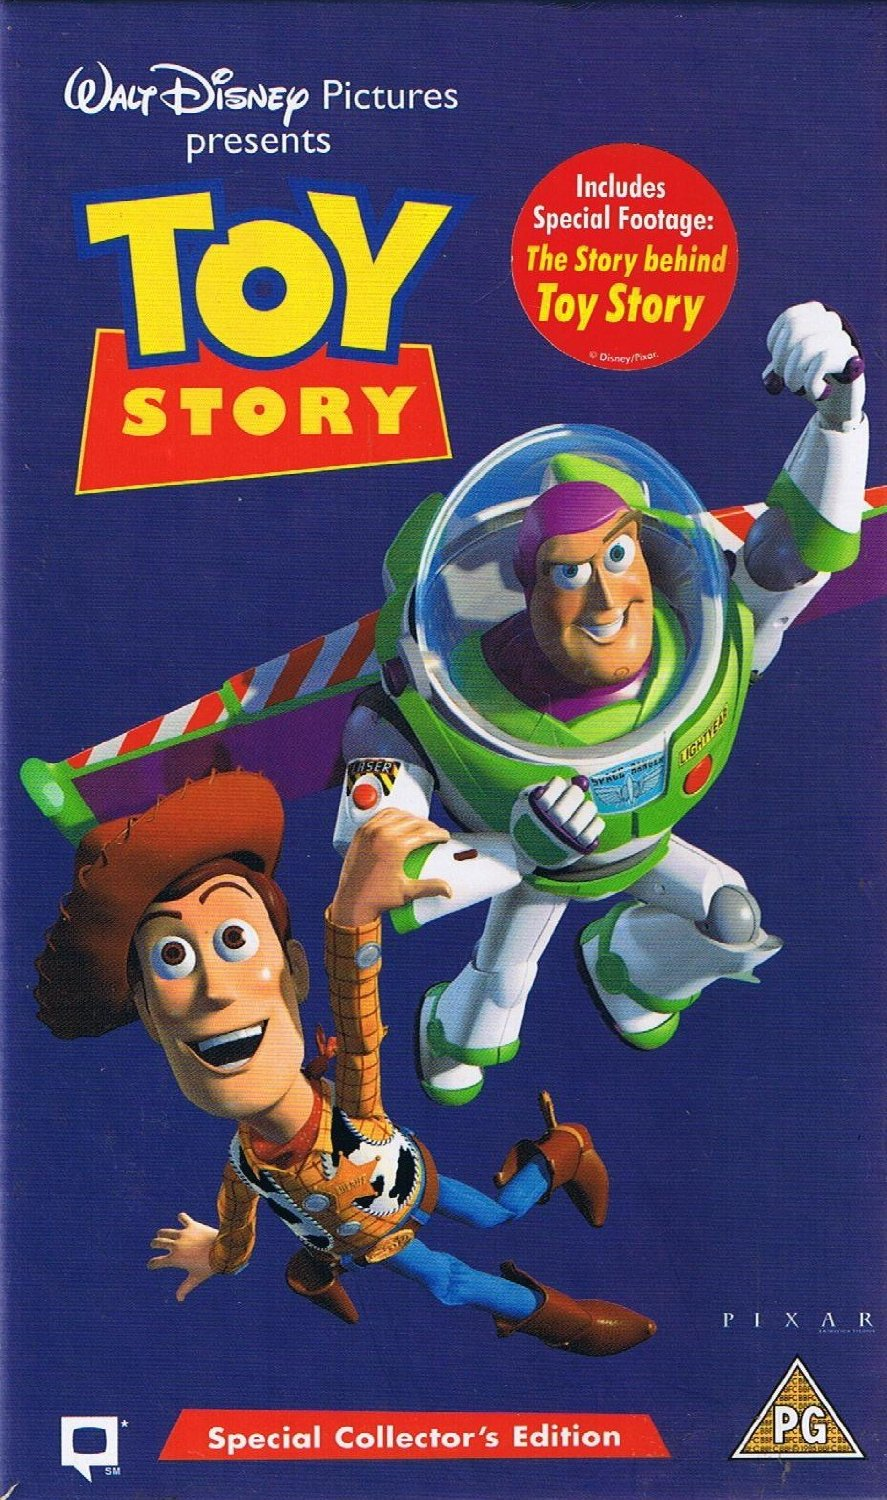 Toy Story Cracked Magazine: Disney Pixar Animation